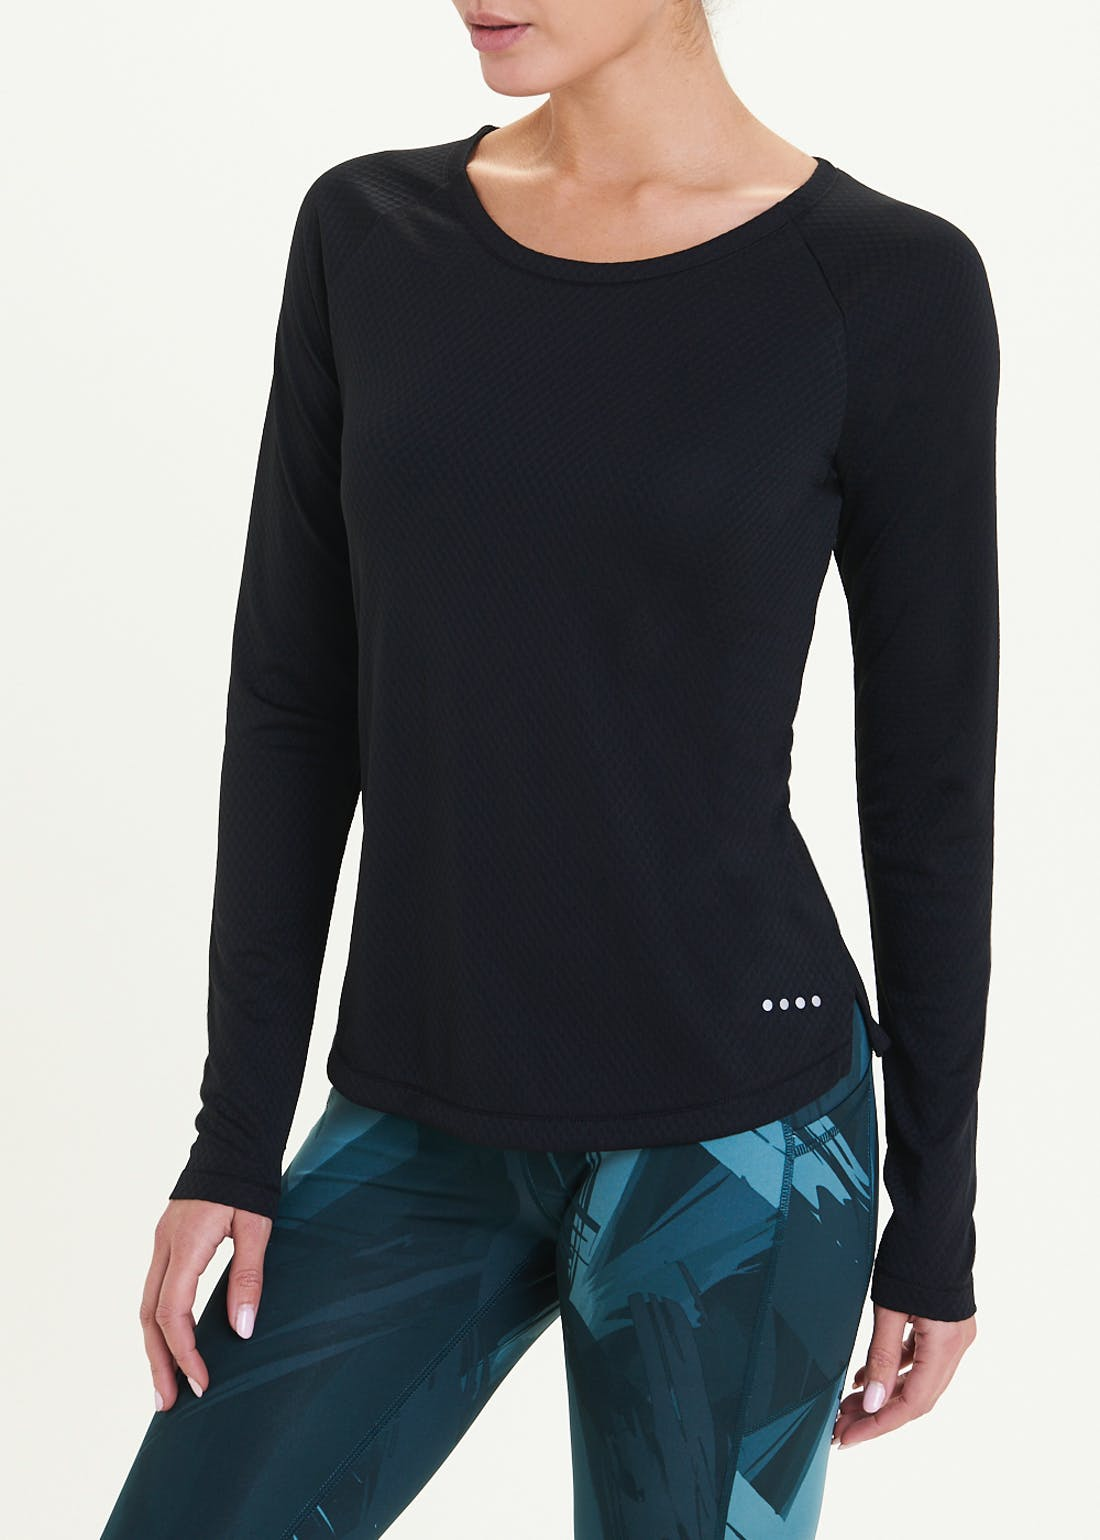 Souluxe Long Sleeve Rainbow Tape Gym Top